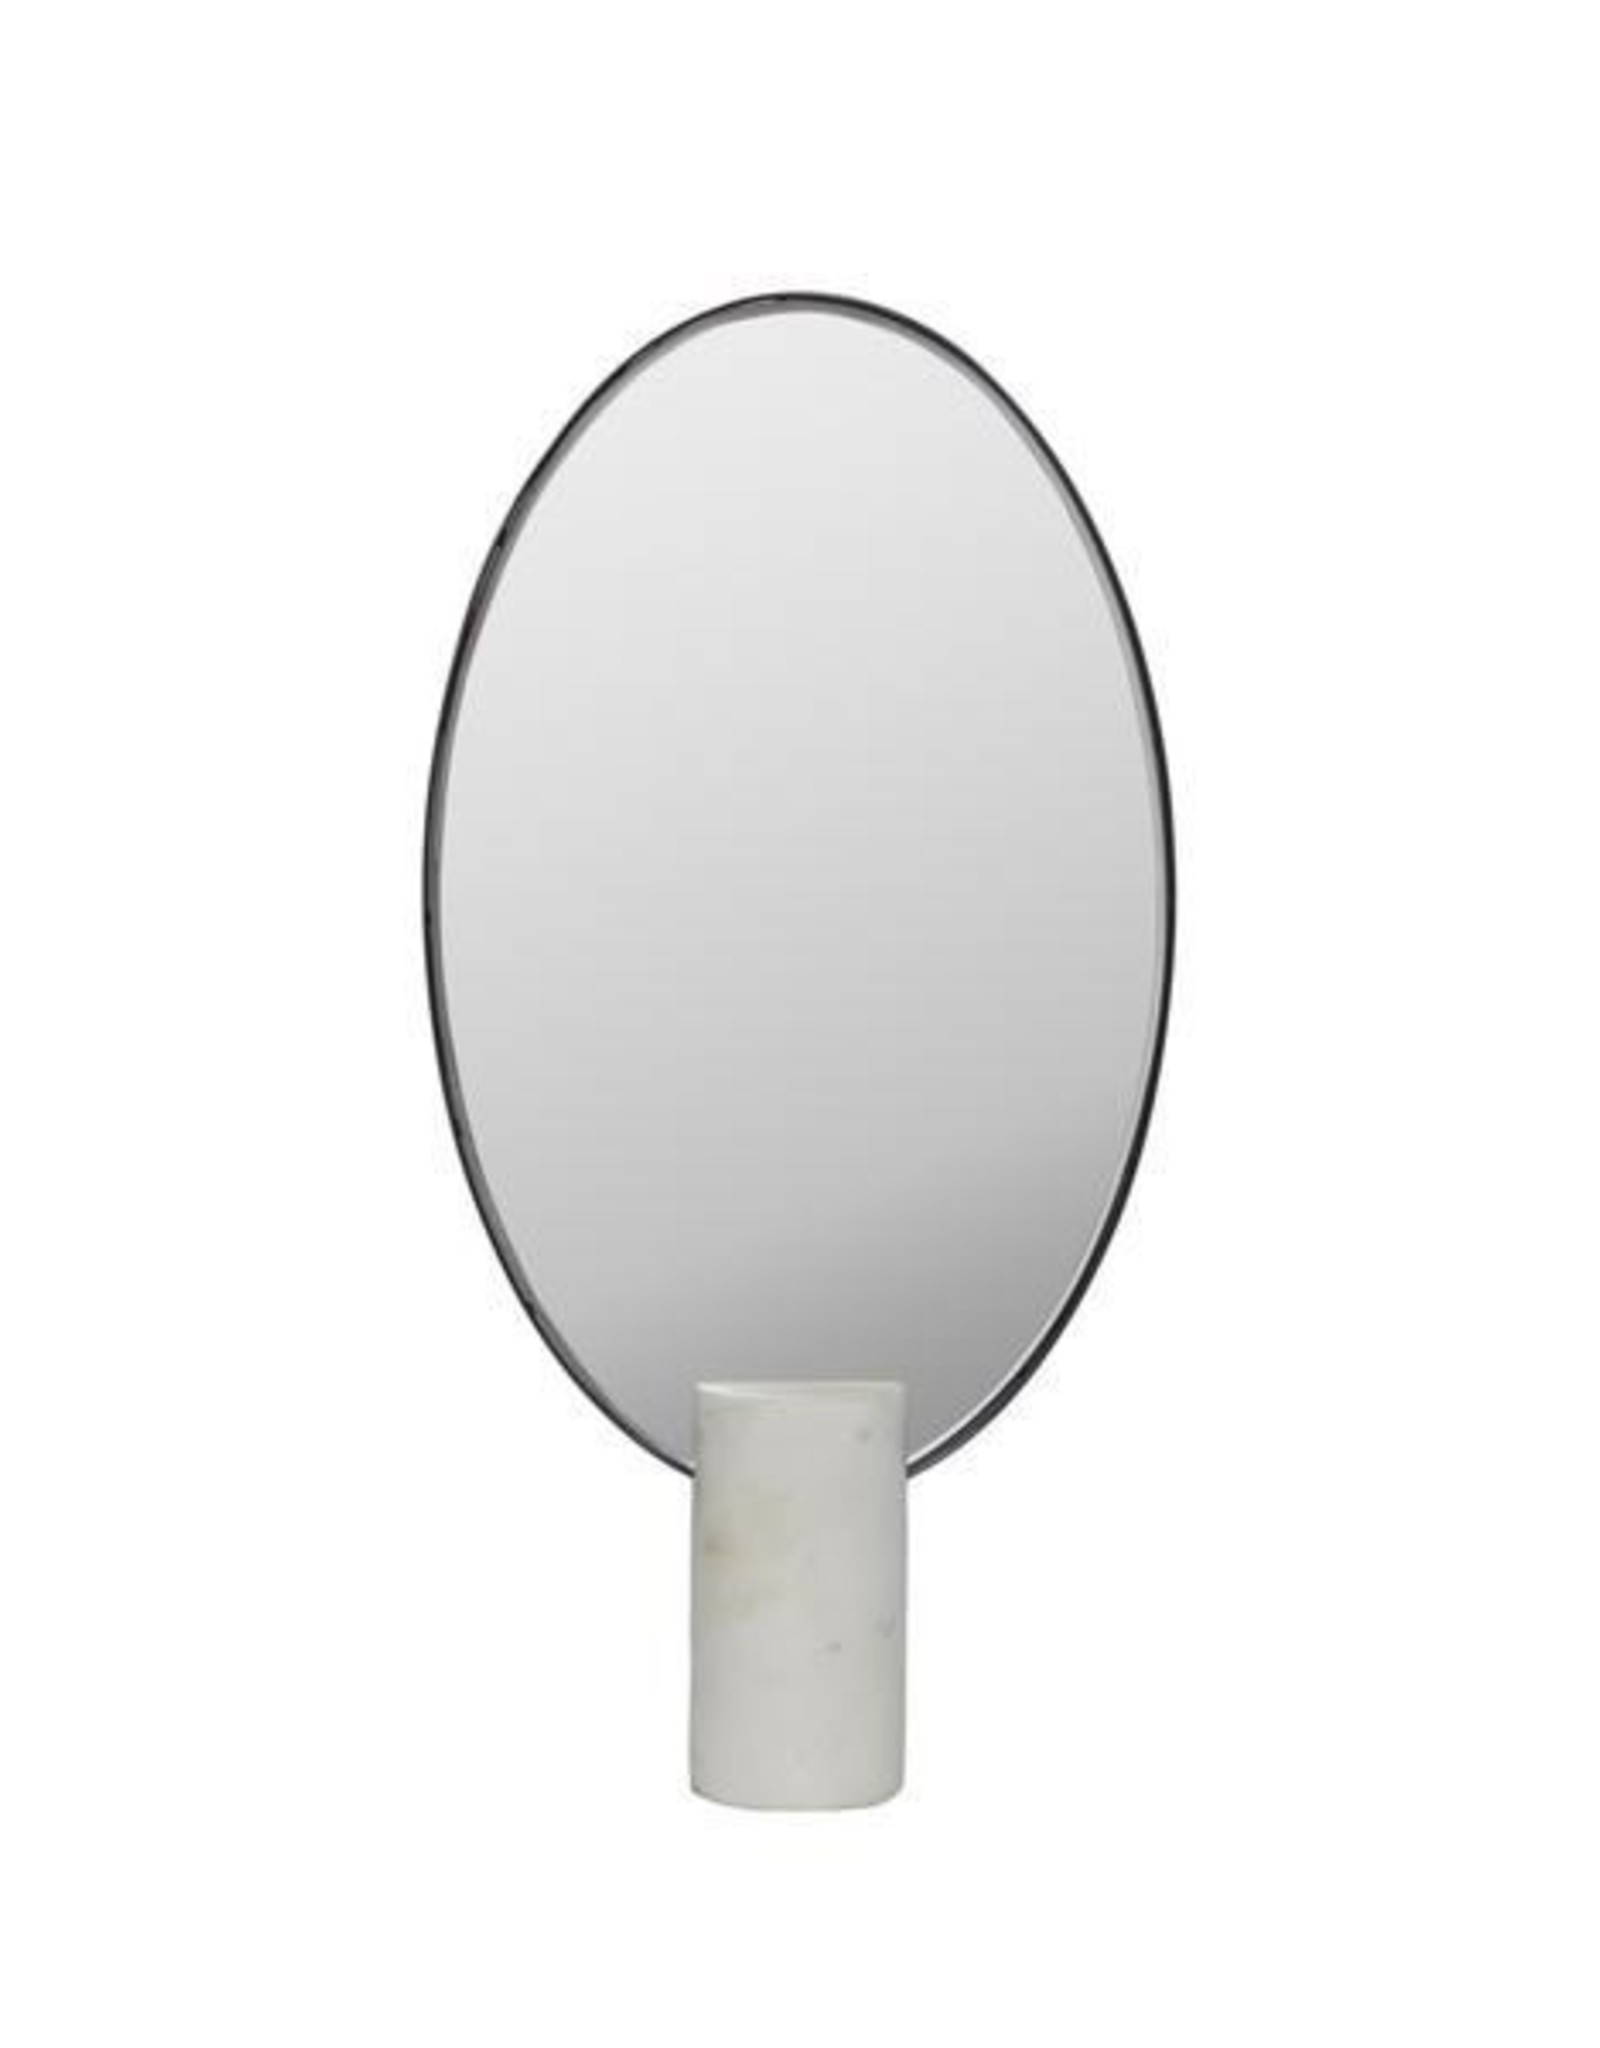 Dome Deco Dôme deco - Mirror oval on white marble stand